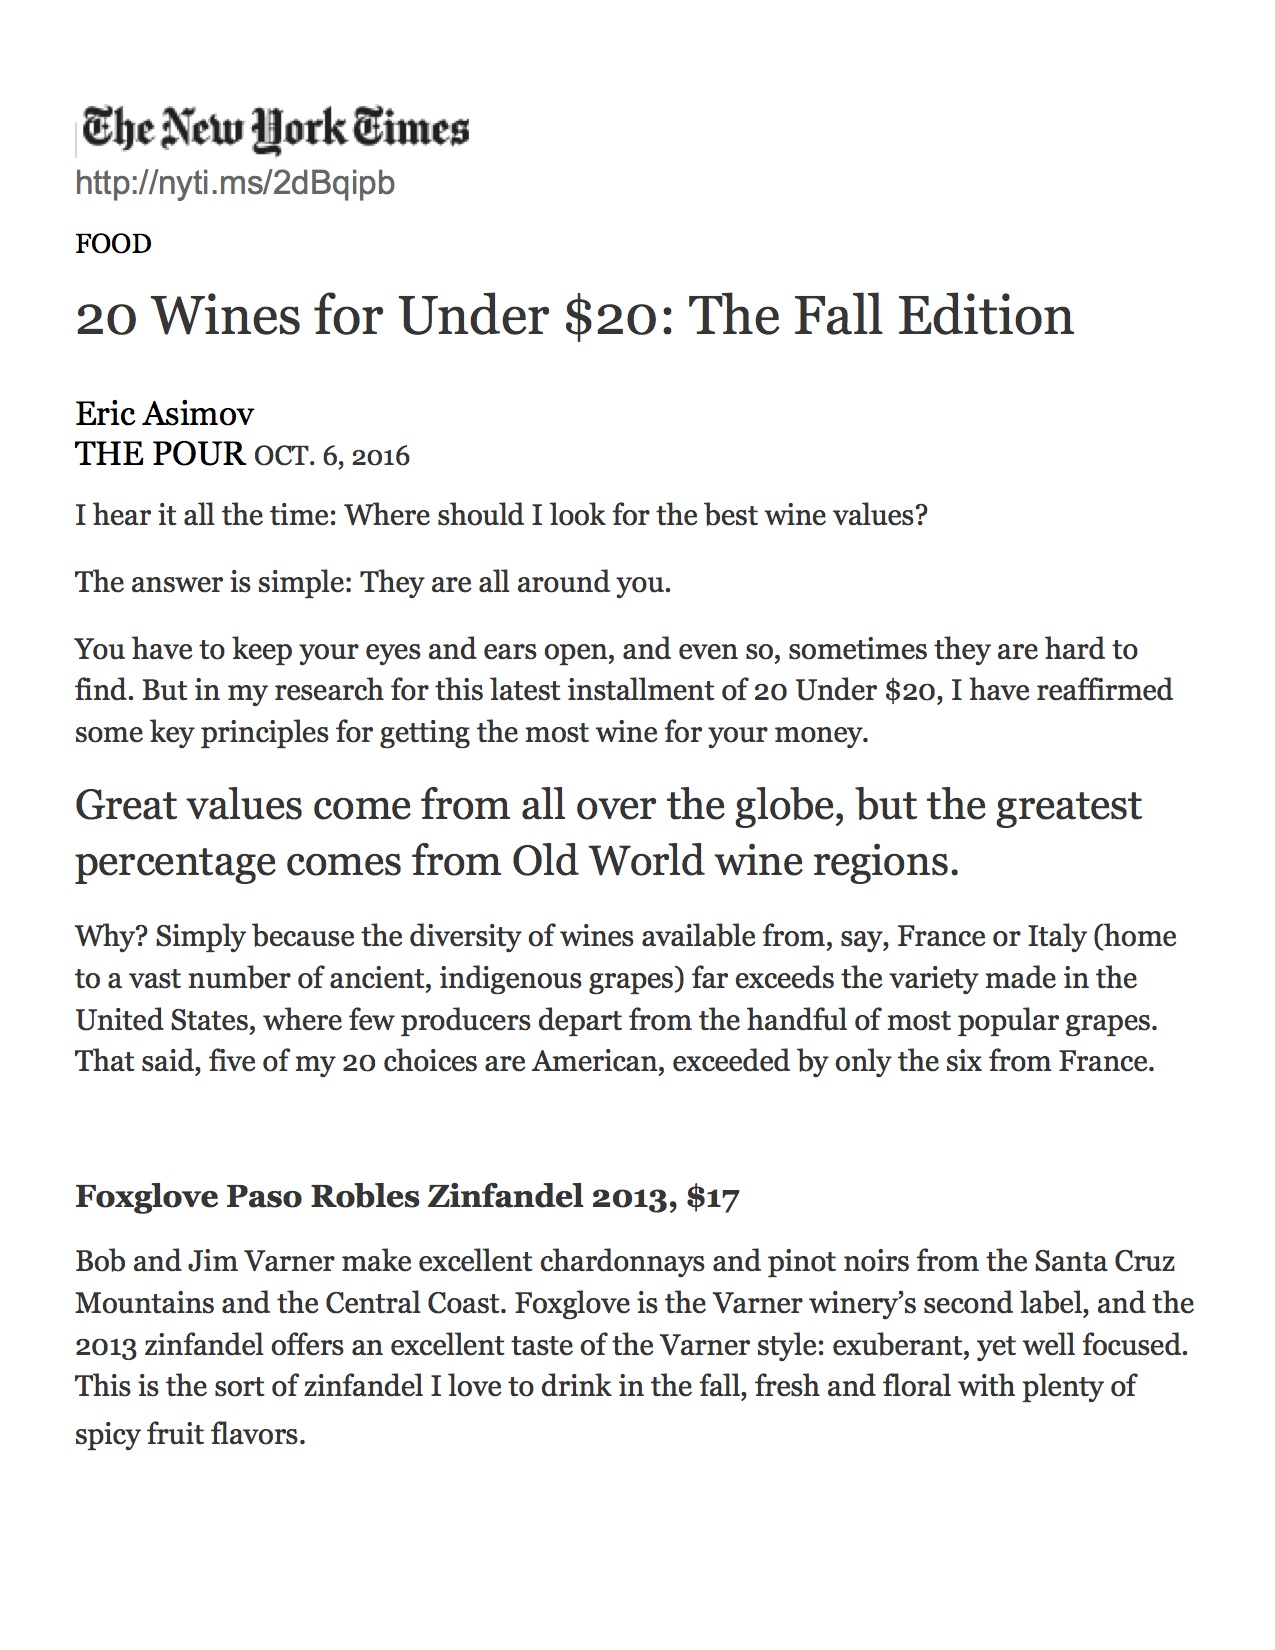 2013 Foxglove Zinfandel 20 Wines for Under $20: The Fall Edition - The New York Times.jpg